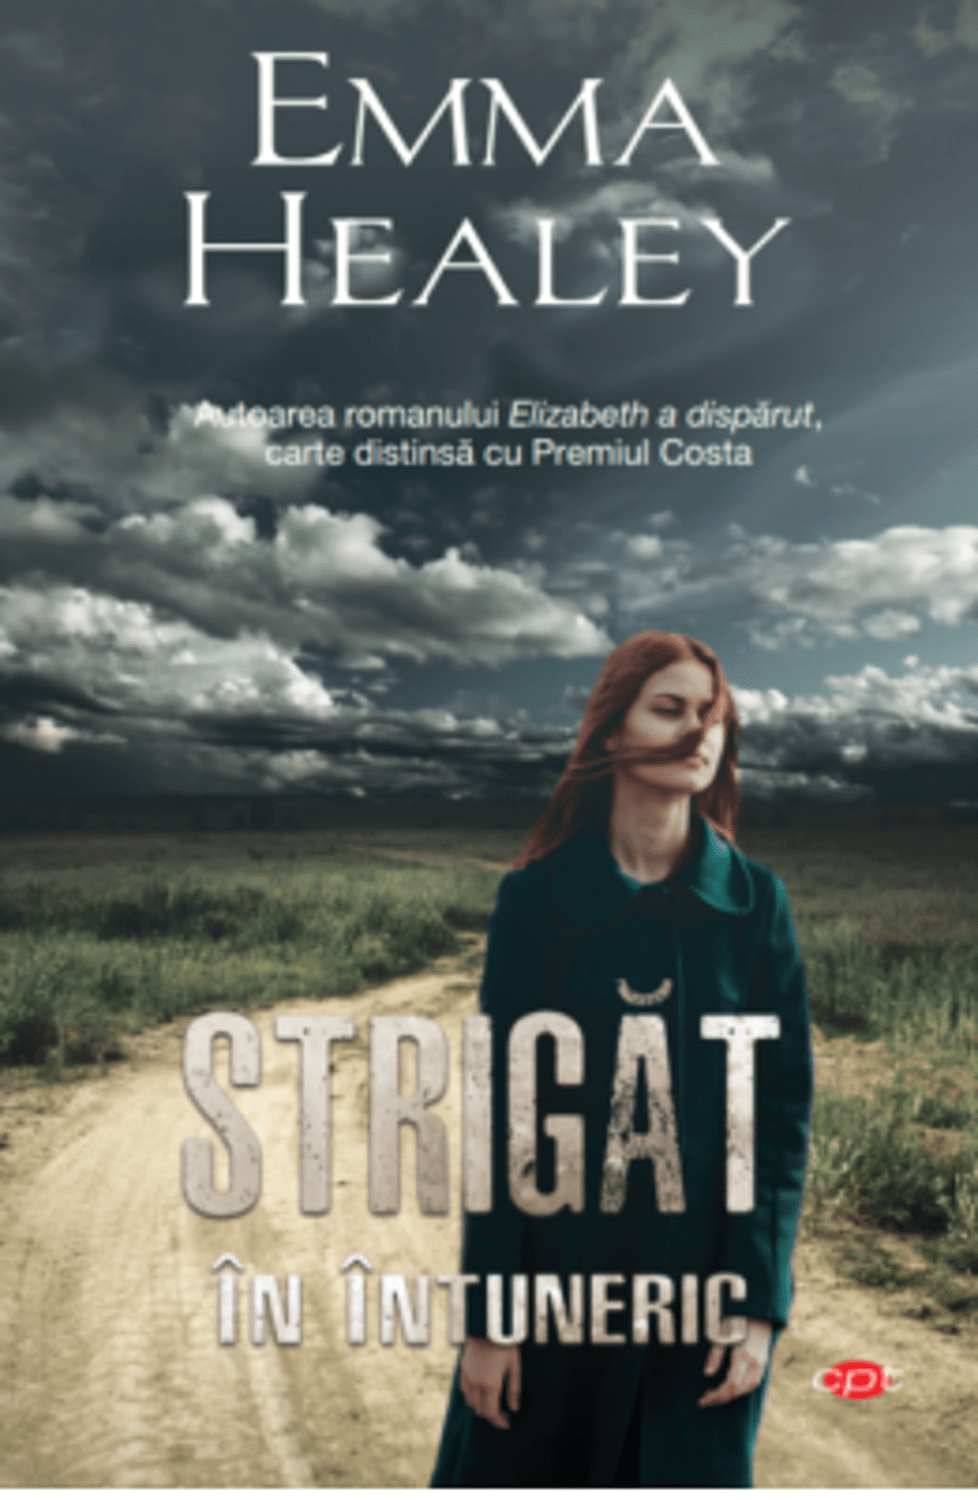 Strigat In Intuneric